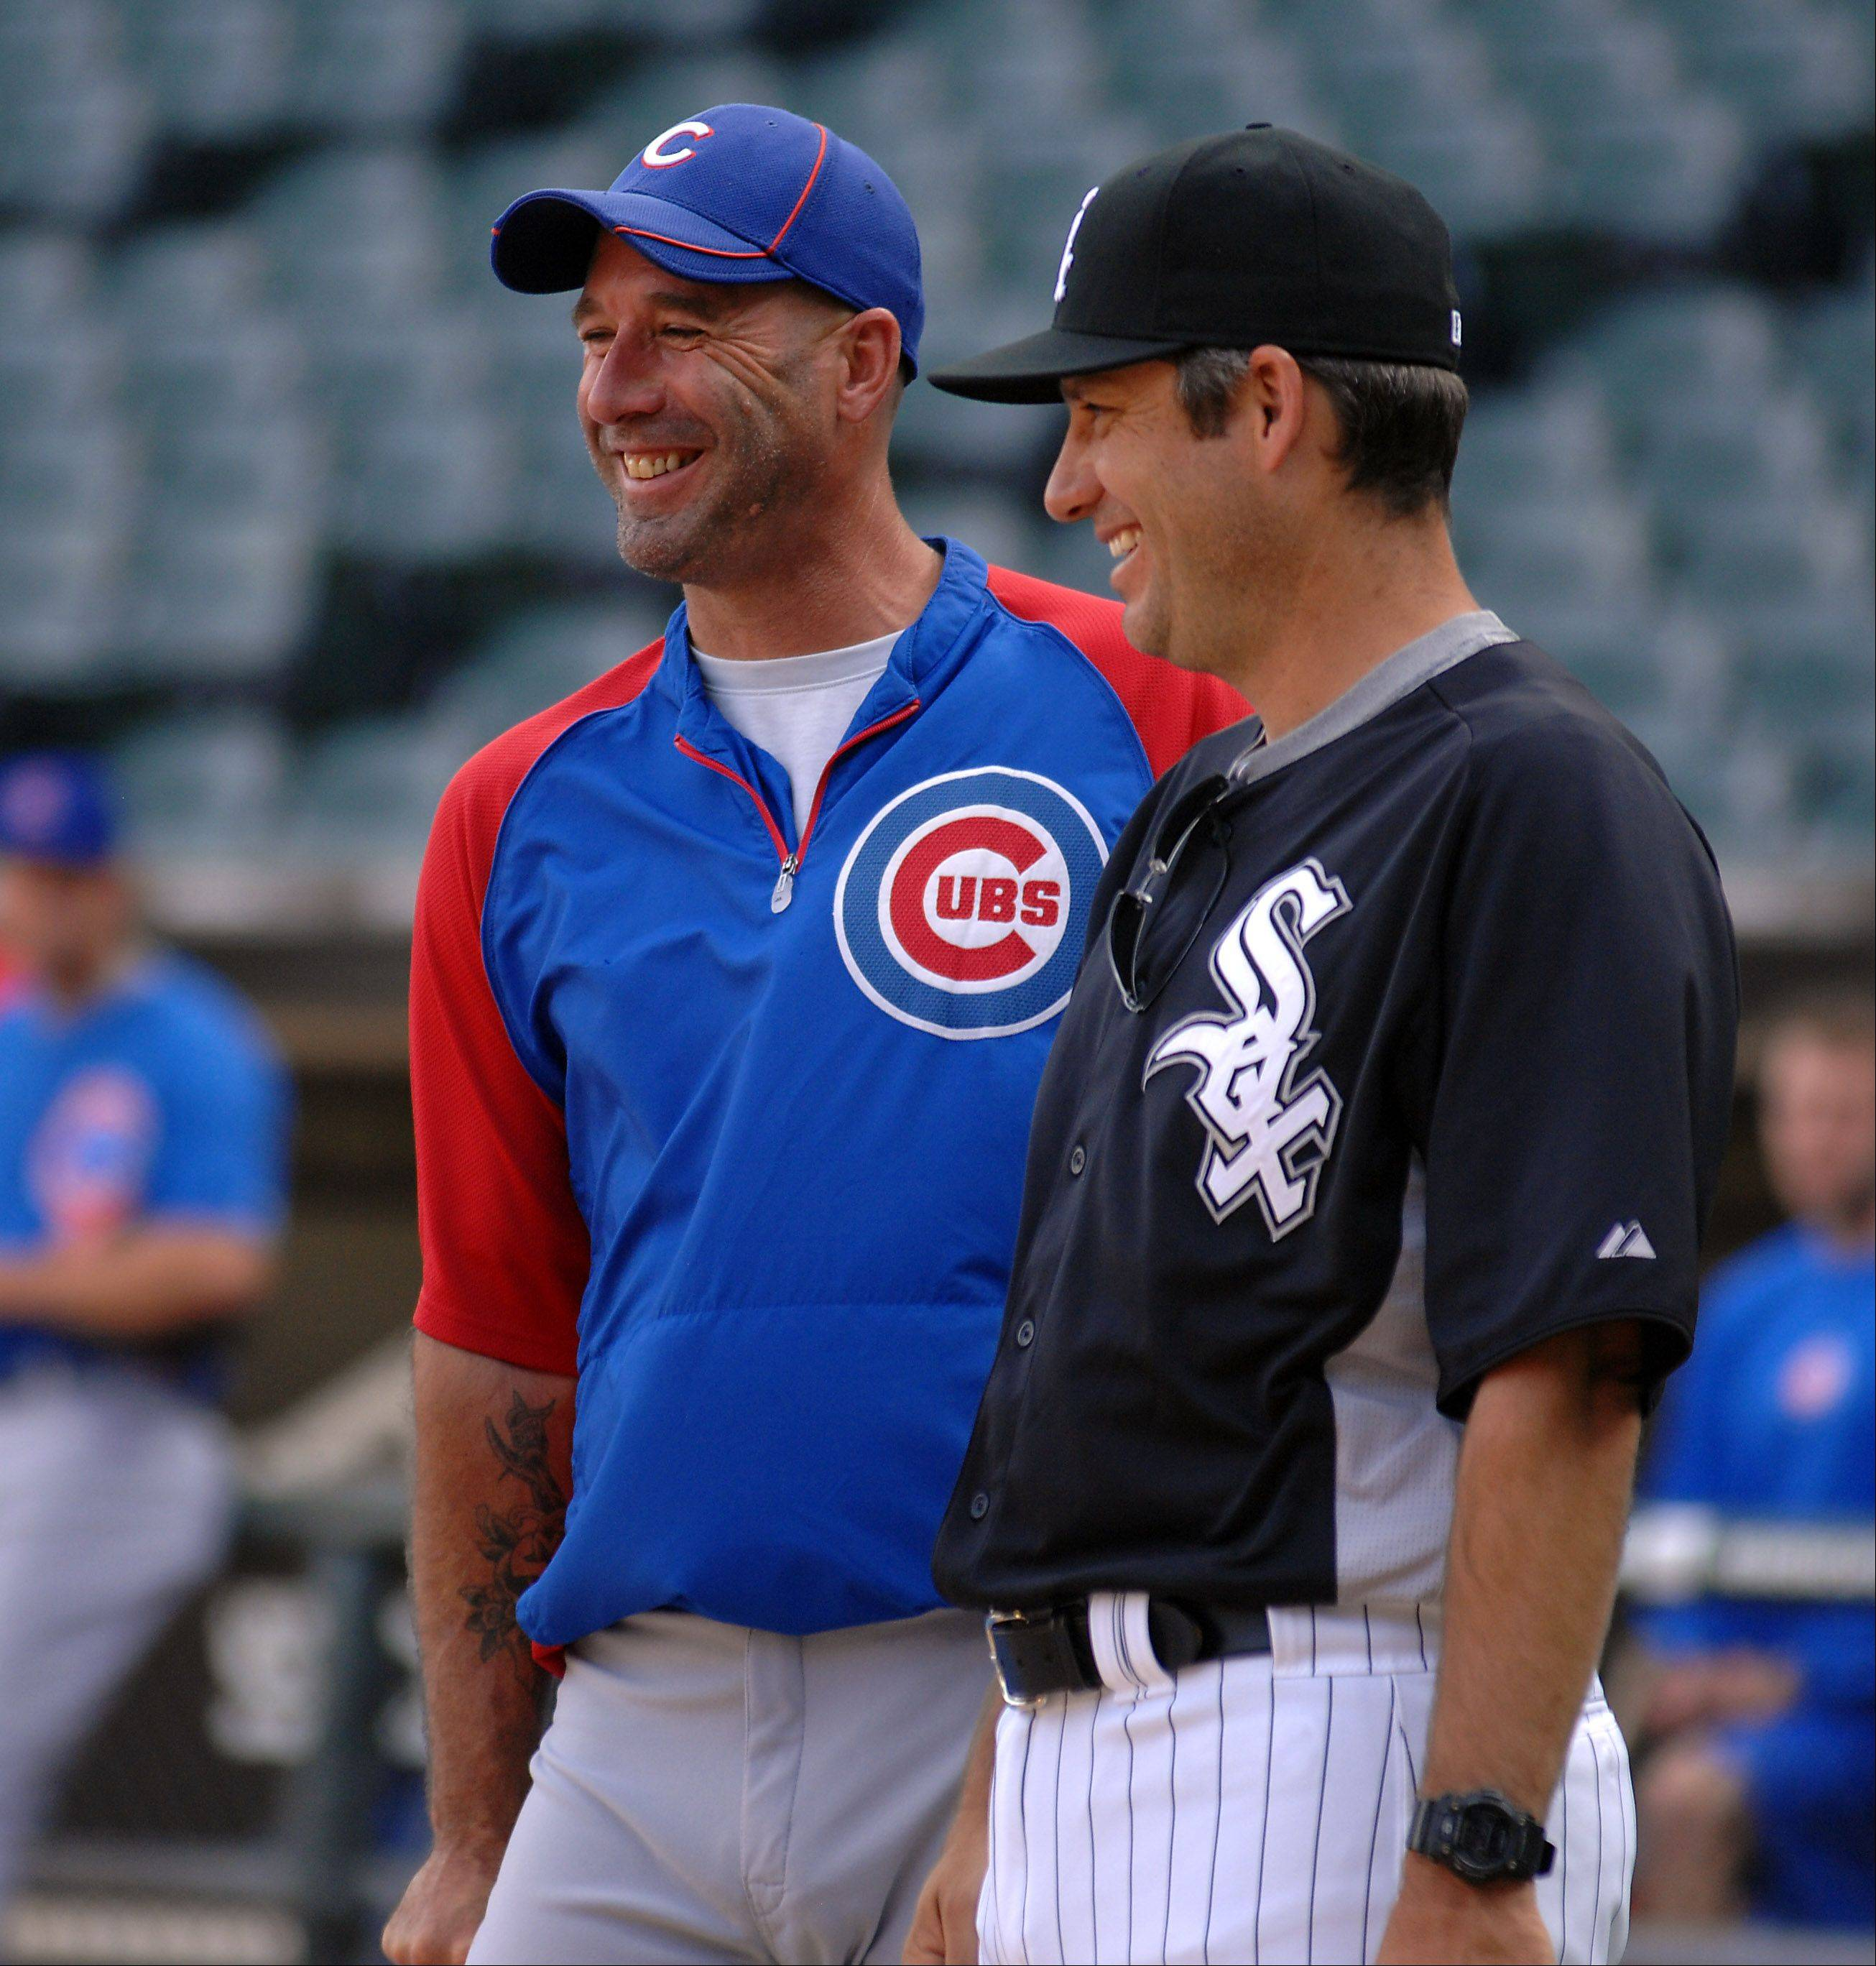 White Sox manager Robin Ventura and Chicago Cubs manager Dale Sveum share a laugh.